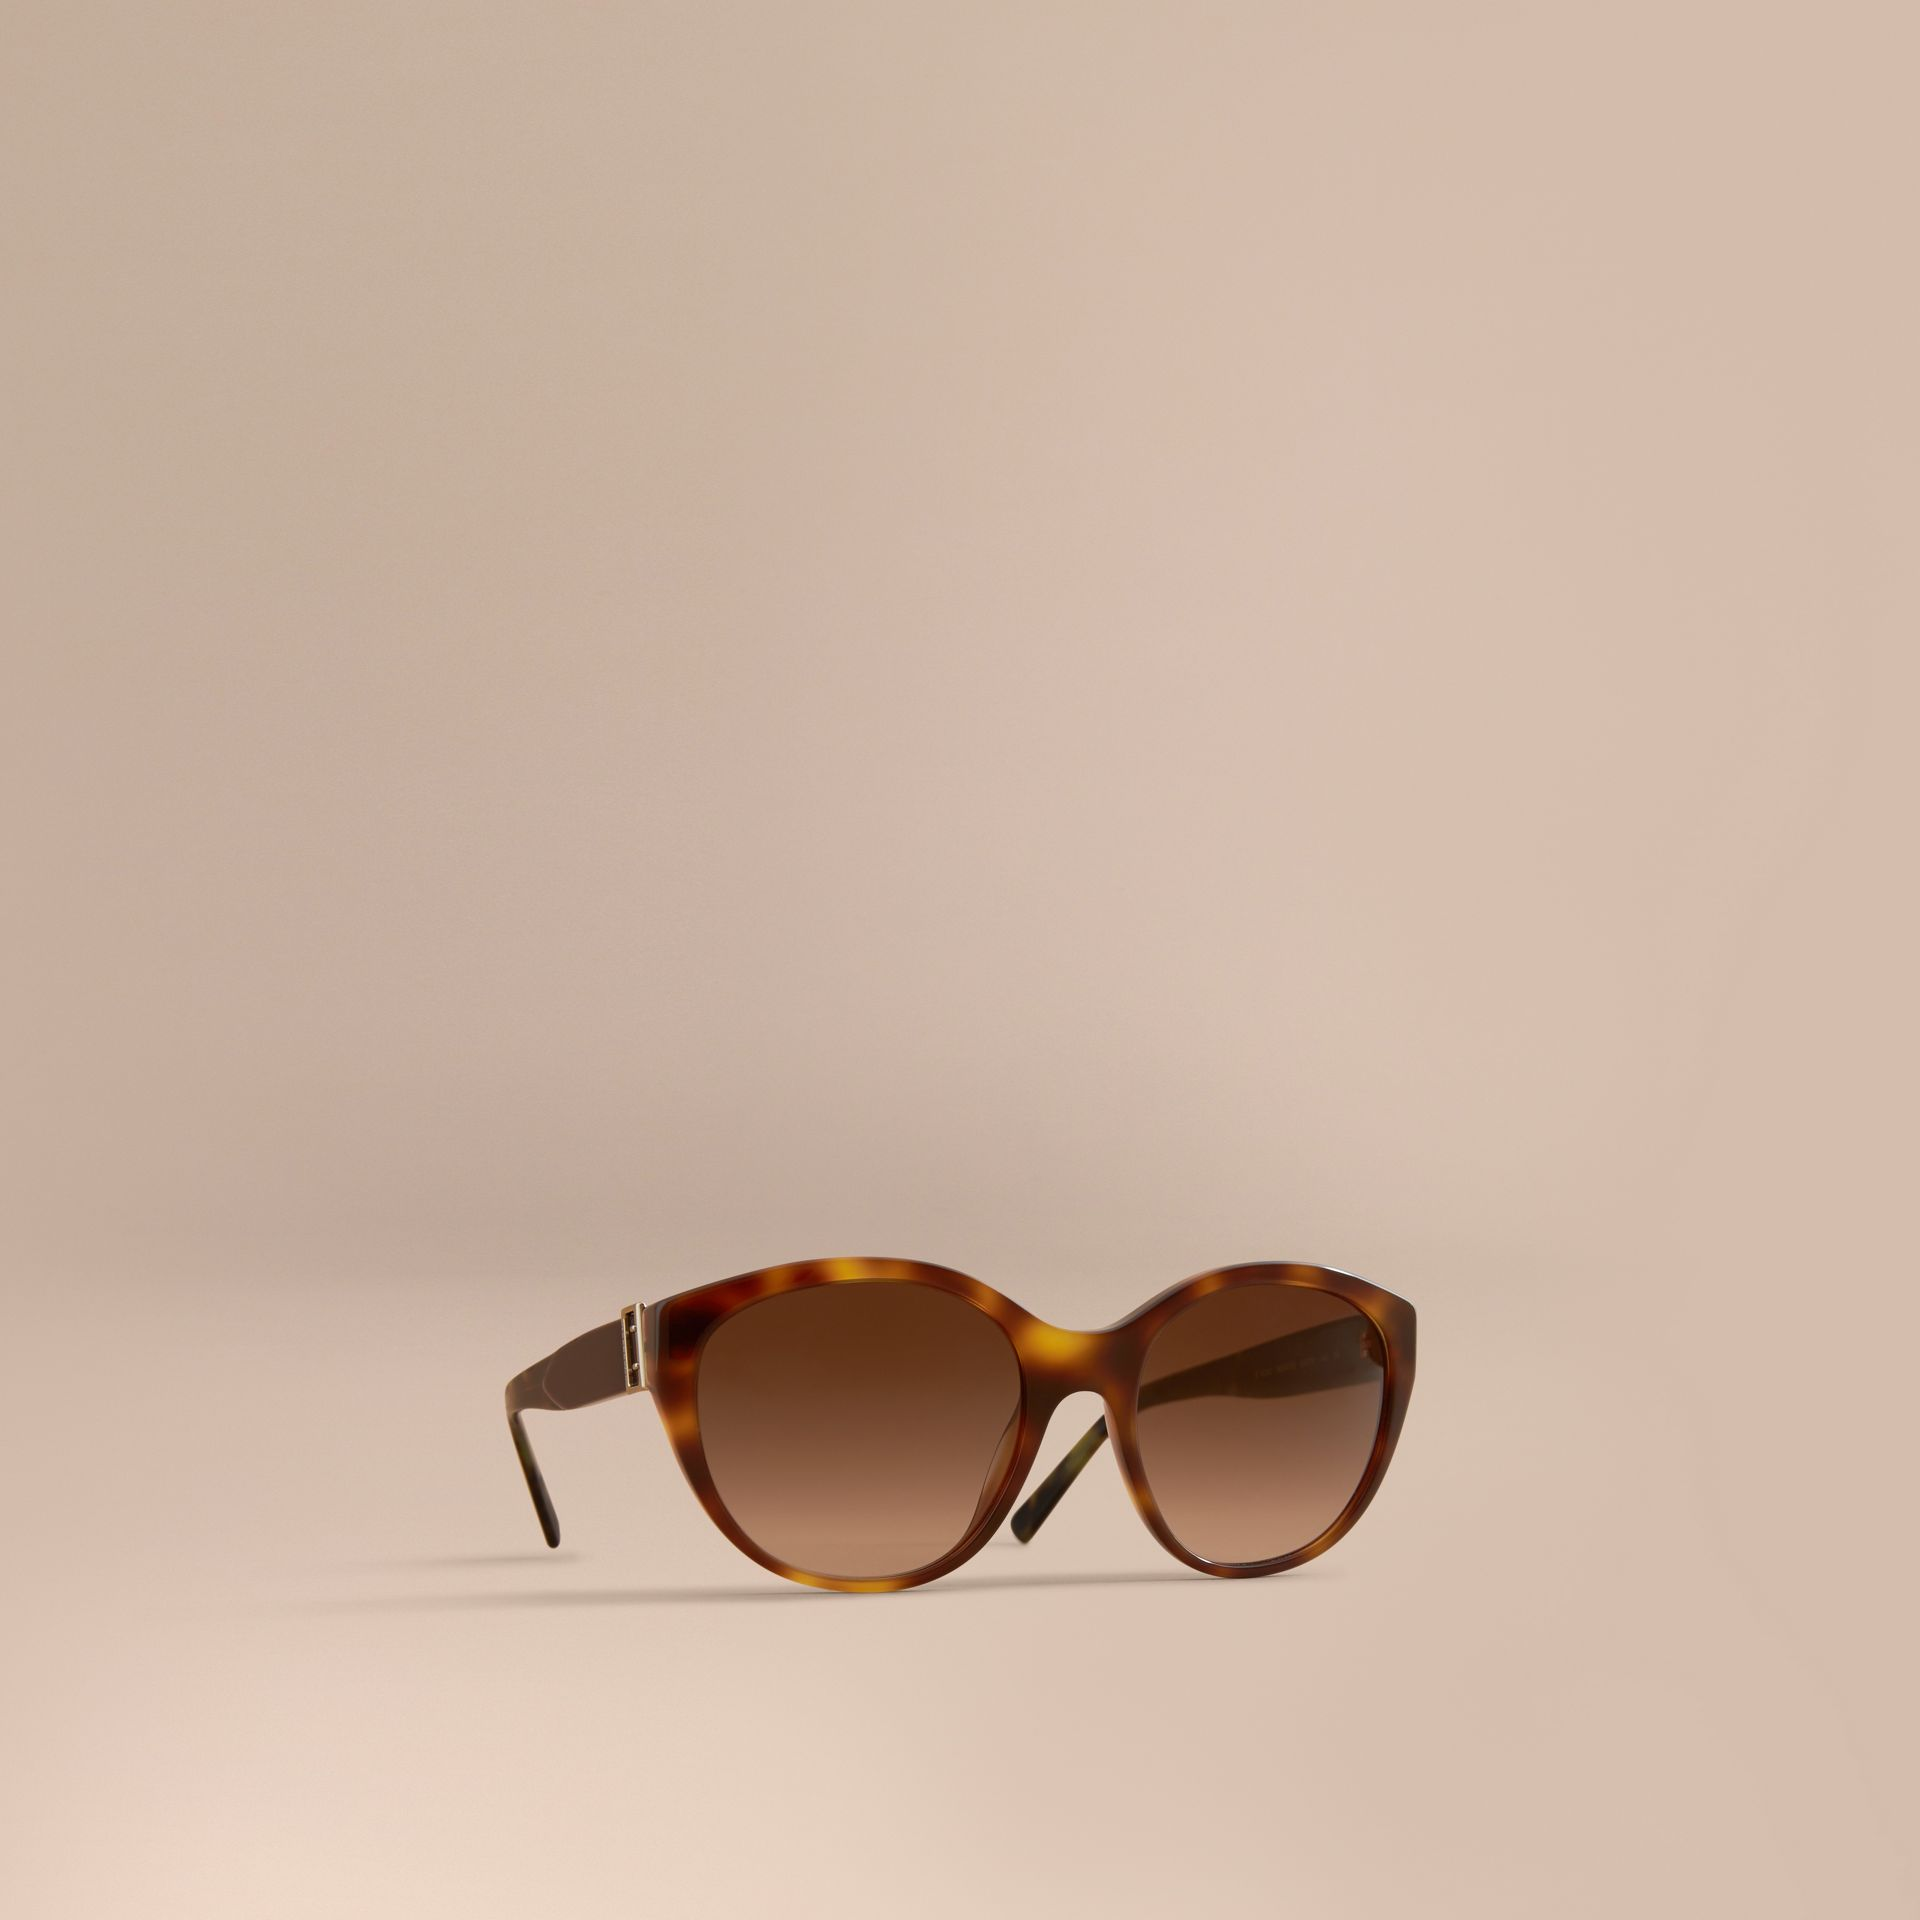 Buckle Detail Round Frame Sunglasses in Tortoise Green - Women | Burberry Canada - gallery image 1